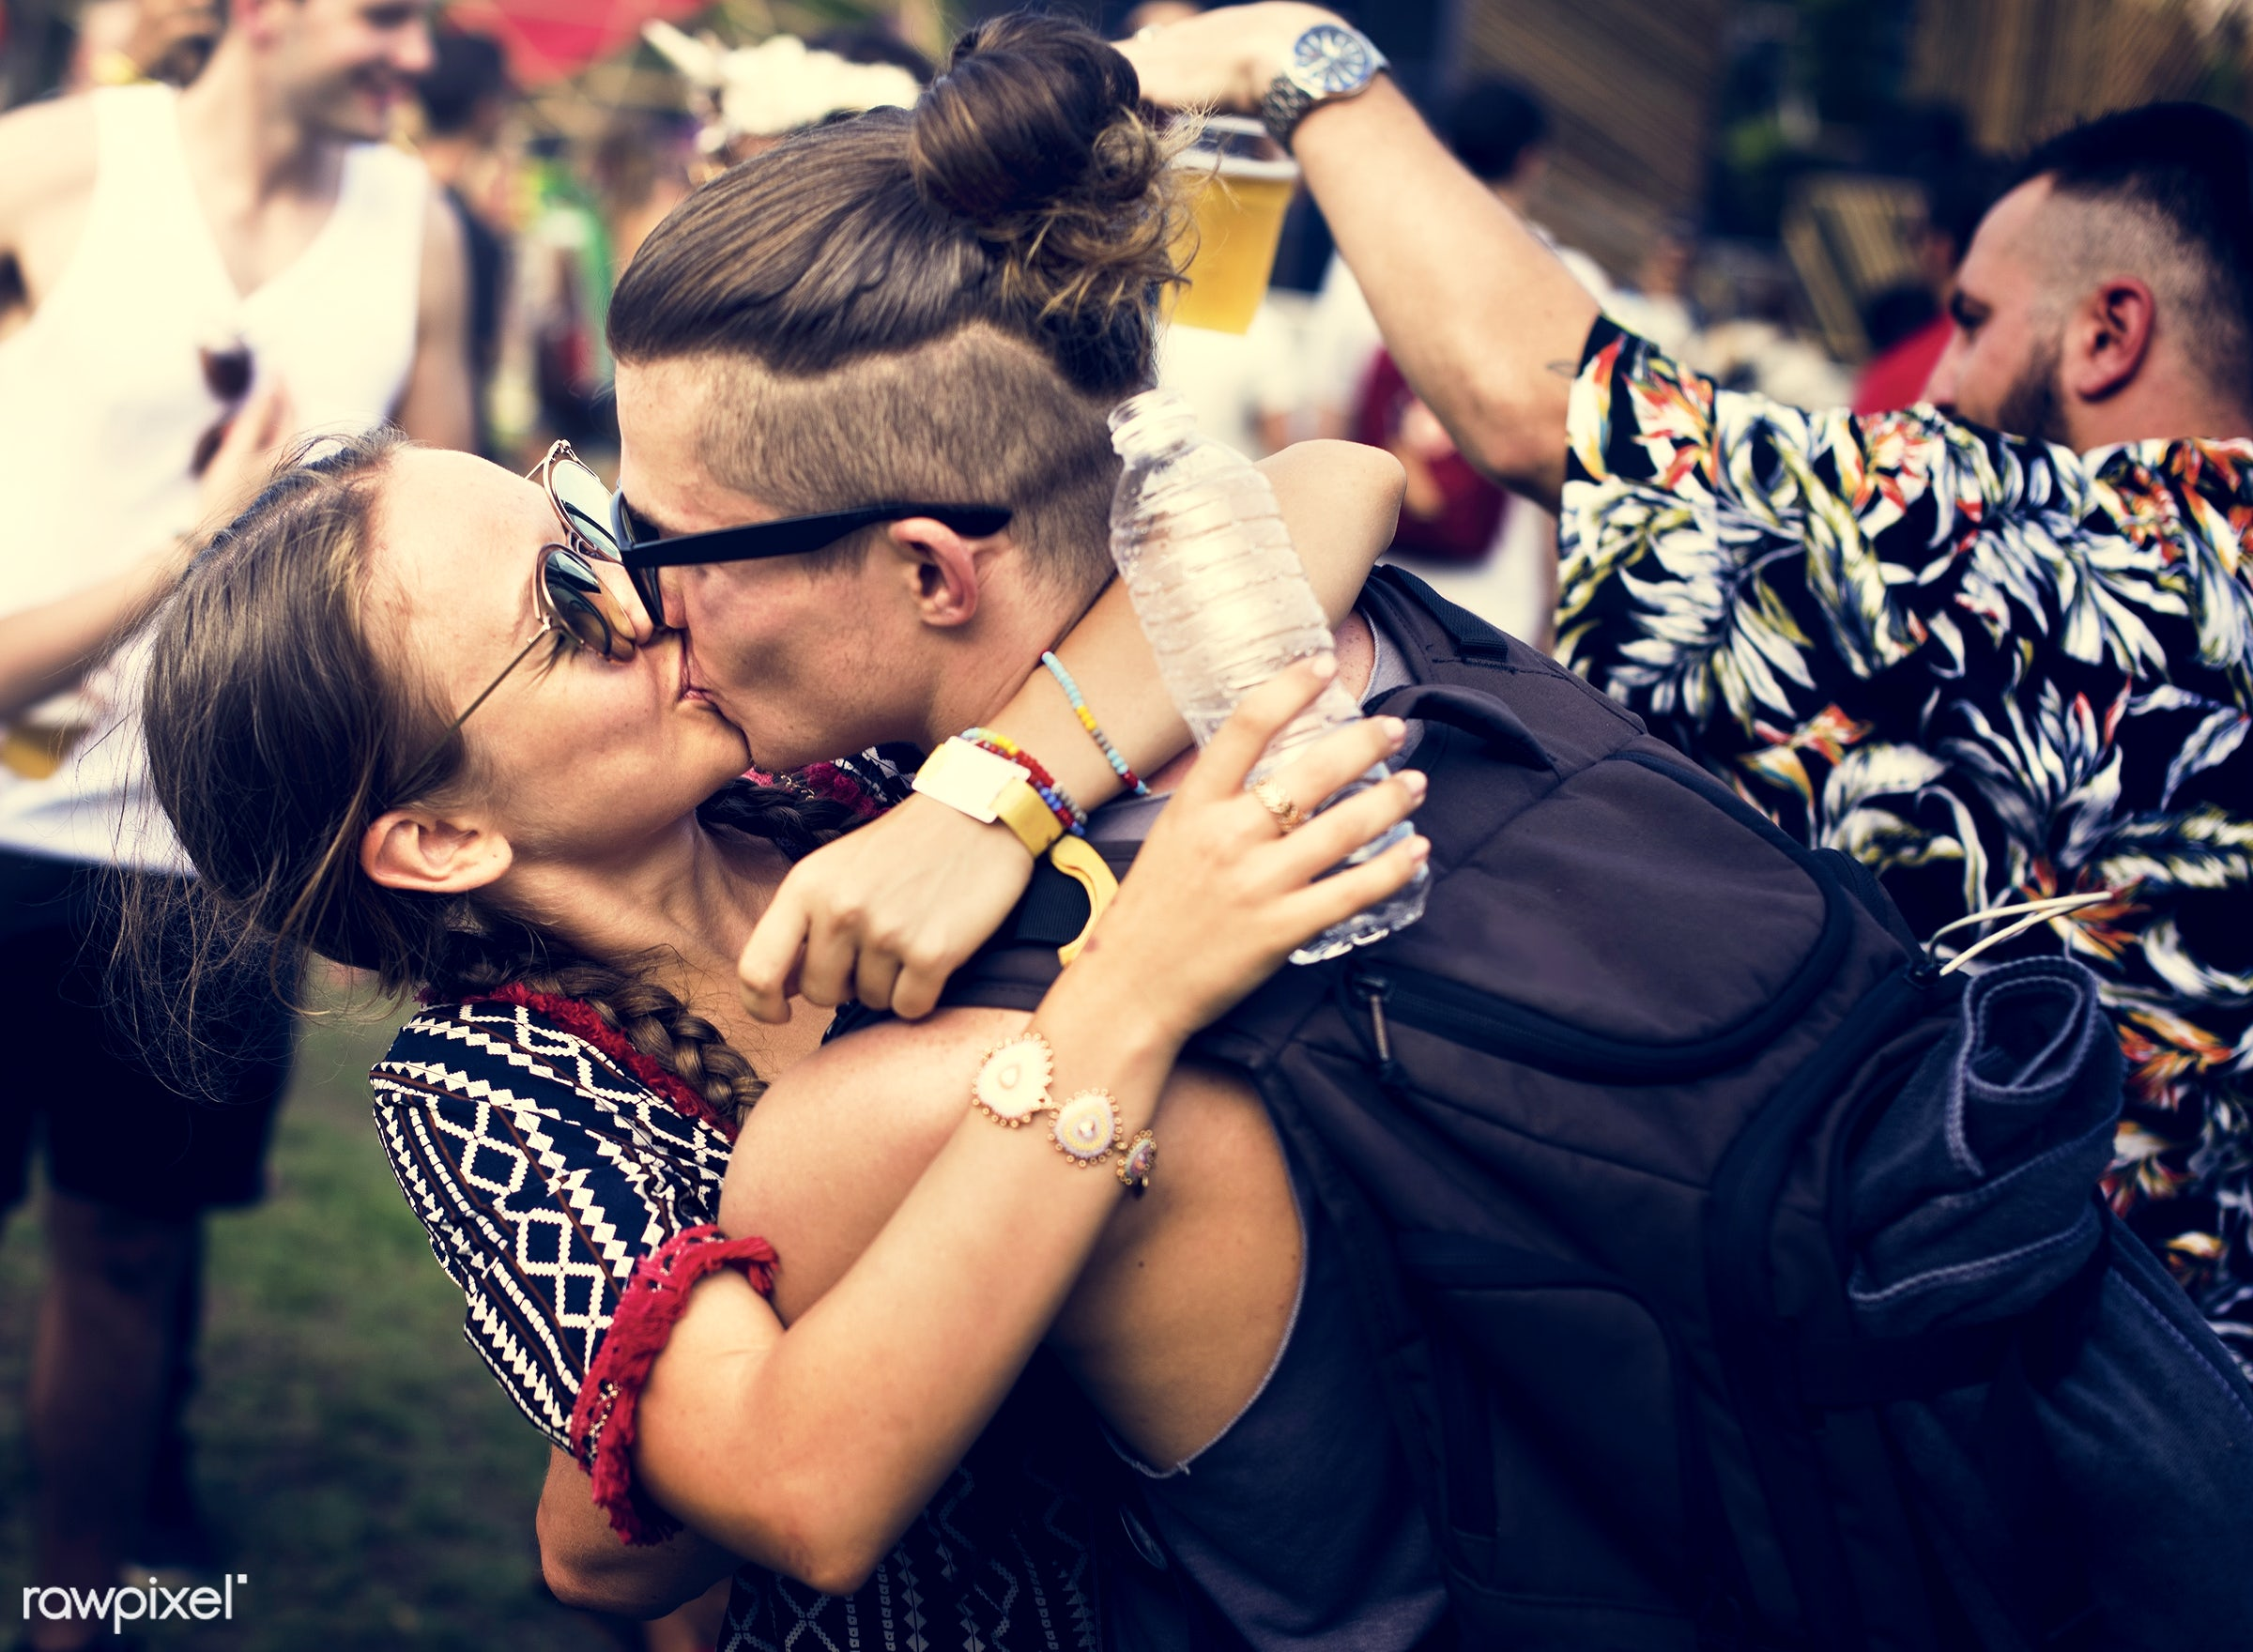 concert, person, hug, party, people, love, kiss, event, woman, lifestyle, weekend, lover, kissing, leisure, happiness, fun,...